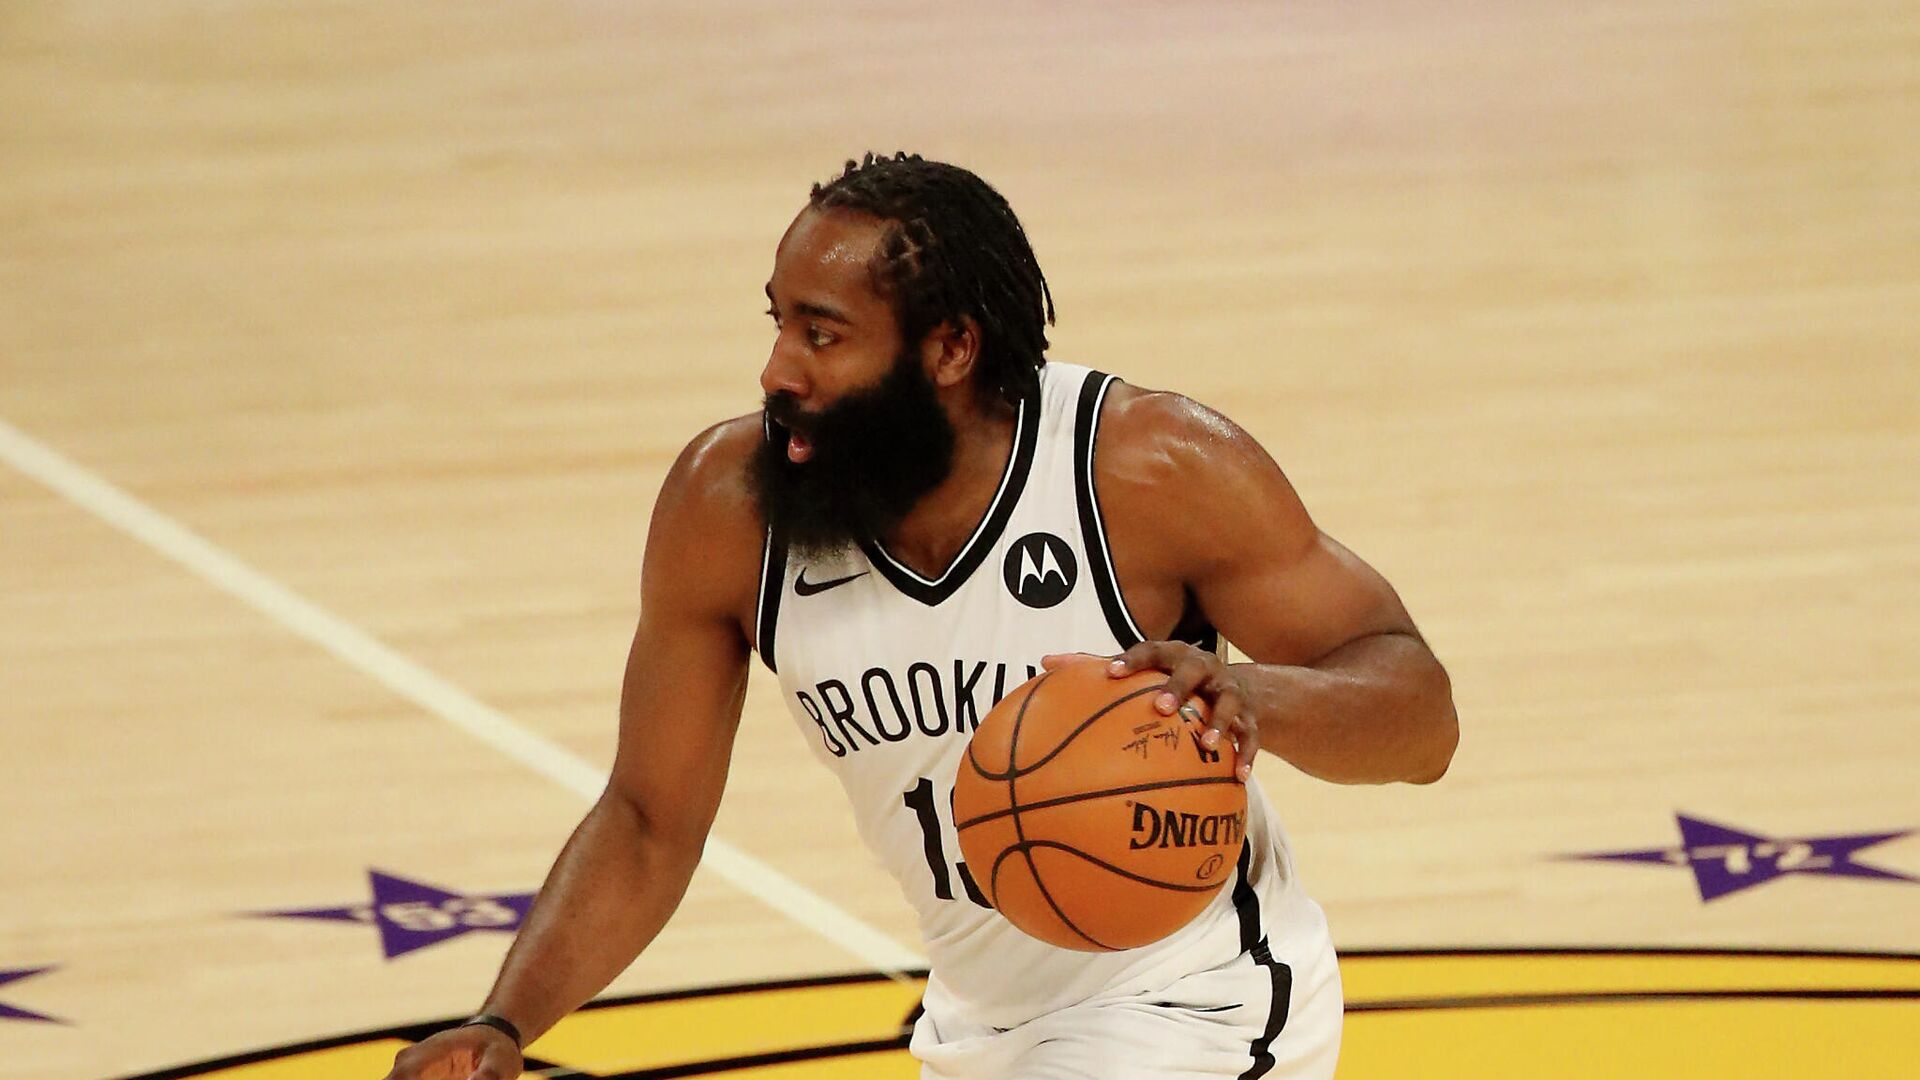 LOS ANGELES, CALIFORNIA - FEBRUARY 18: James Harden #13 of the Brooklyn Nets handles the ball during the third quarter against the Los Angeles Lakers at Staples Center on February 18, 2021 in Los Angeles, California. NOTE TO USER: User expressly acknowledges and agrees that, by downloading and or using this photograph, User is consenting to the terms and conditions of the Getty Images License Agreement.   Katelyn Mulcahy/Getty Images/AFP (Photo by Katelyn Mulcahy / GETTY IMAGES NORTH AMERICA / AFP) - РИА Новости, 1920, 22.02.2021